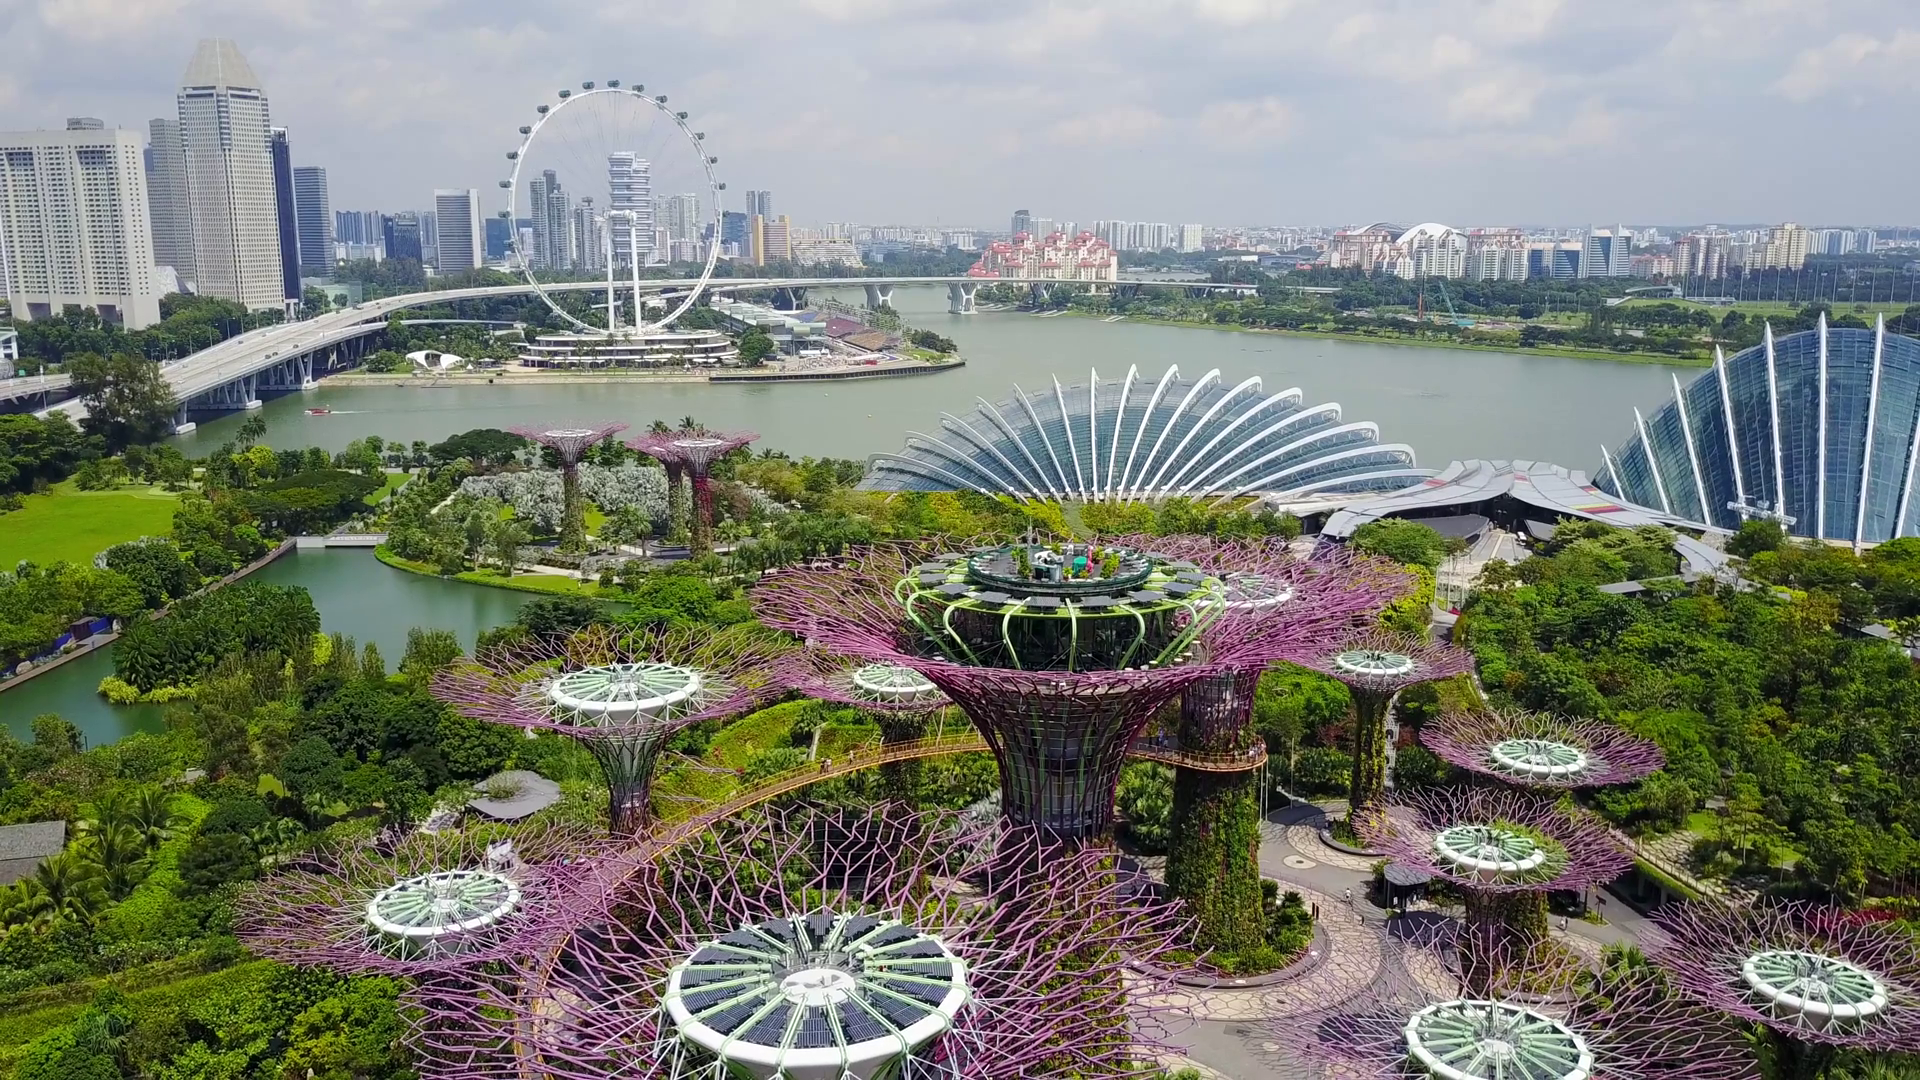 aerial-view-of-the-supertree-grove-at-gardens-by-the-bay-in-singapore_rcc3adoug_thumbnail-full01